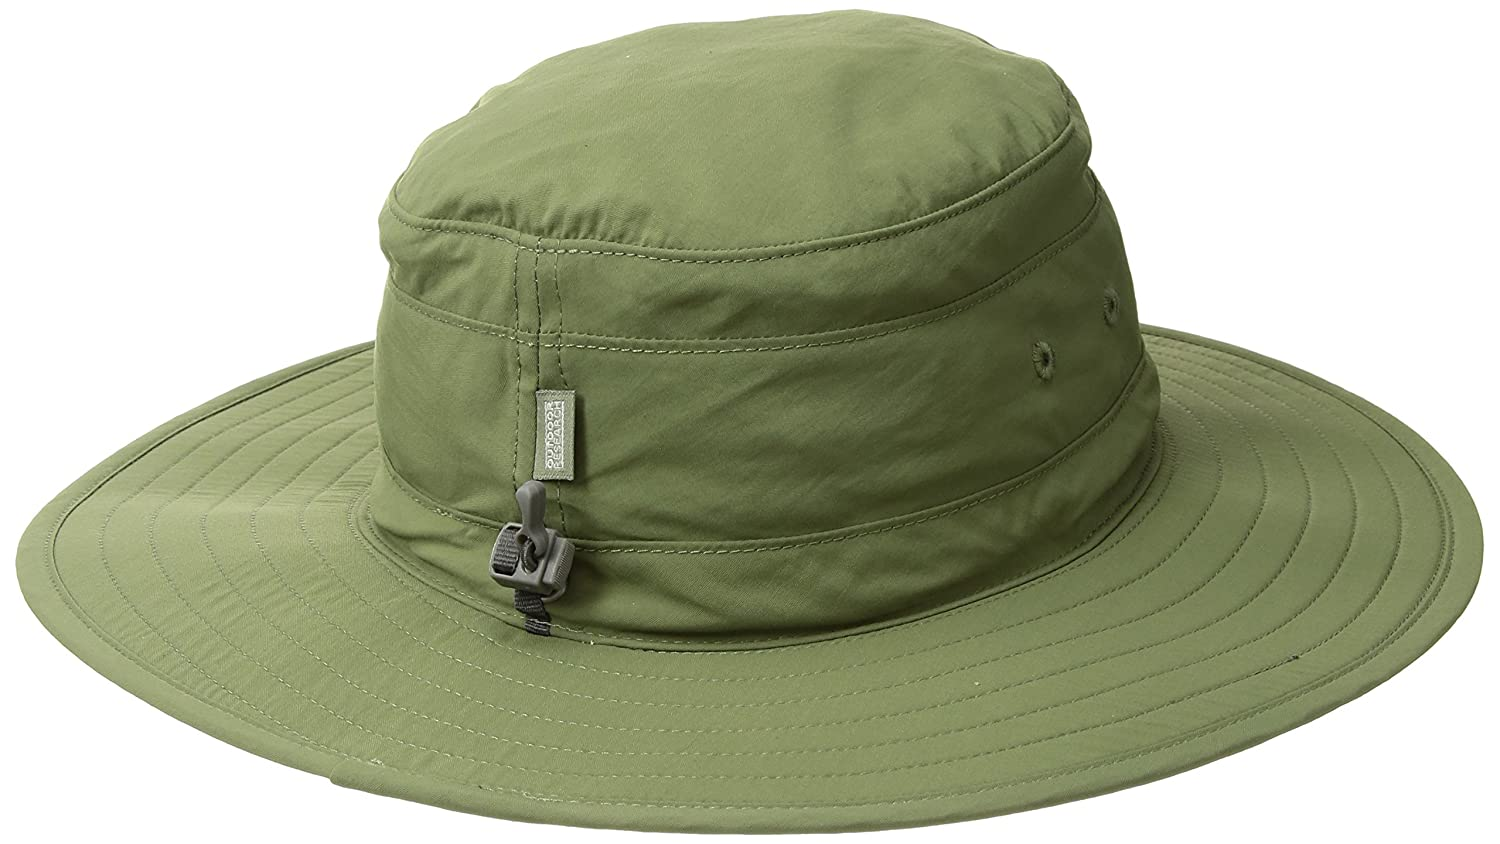 8069f9c36d10a9 Amazon.com: Outdoor Research Women's Solar Roller Hat: Sports & Outdoors